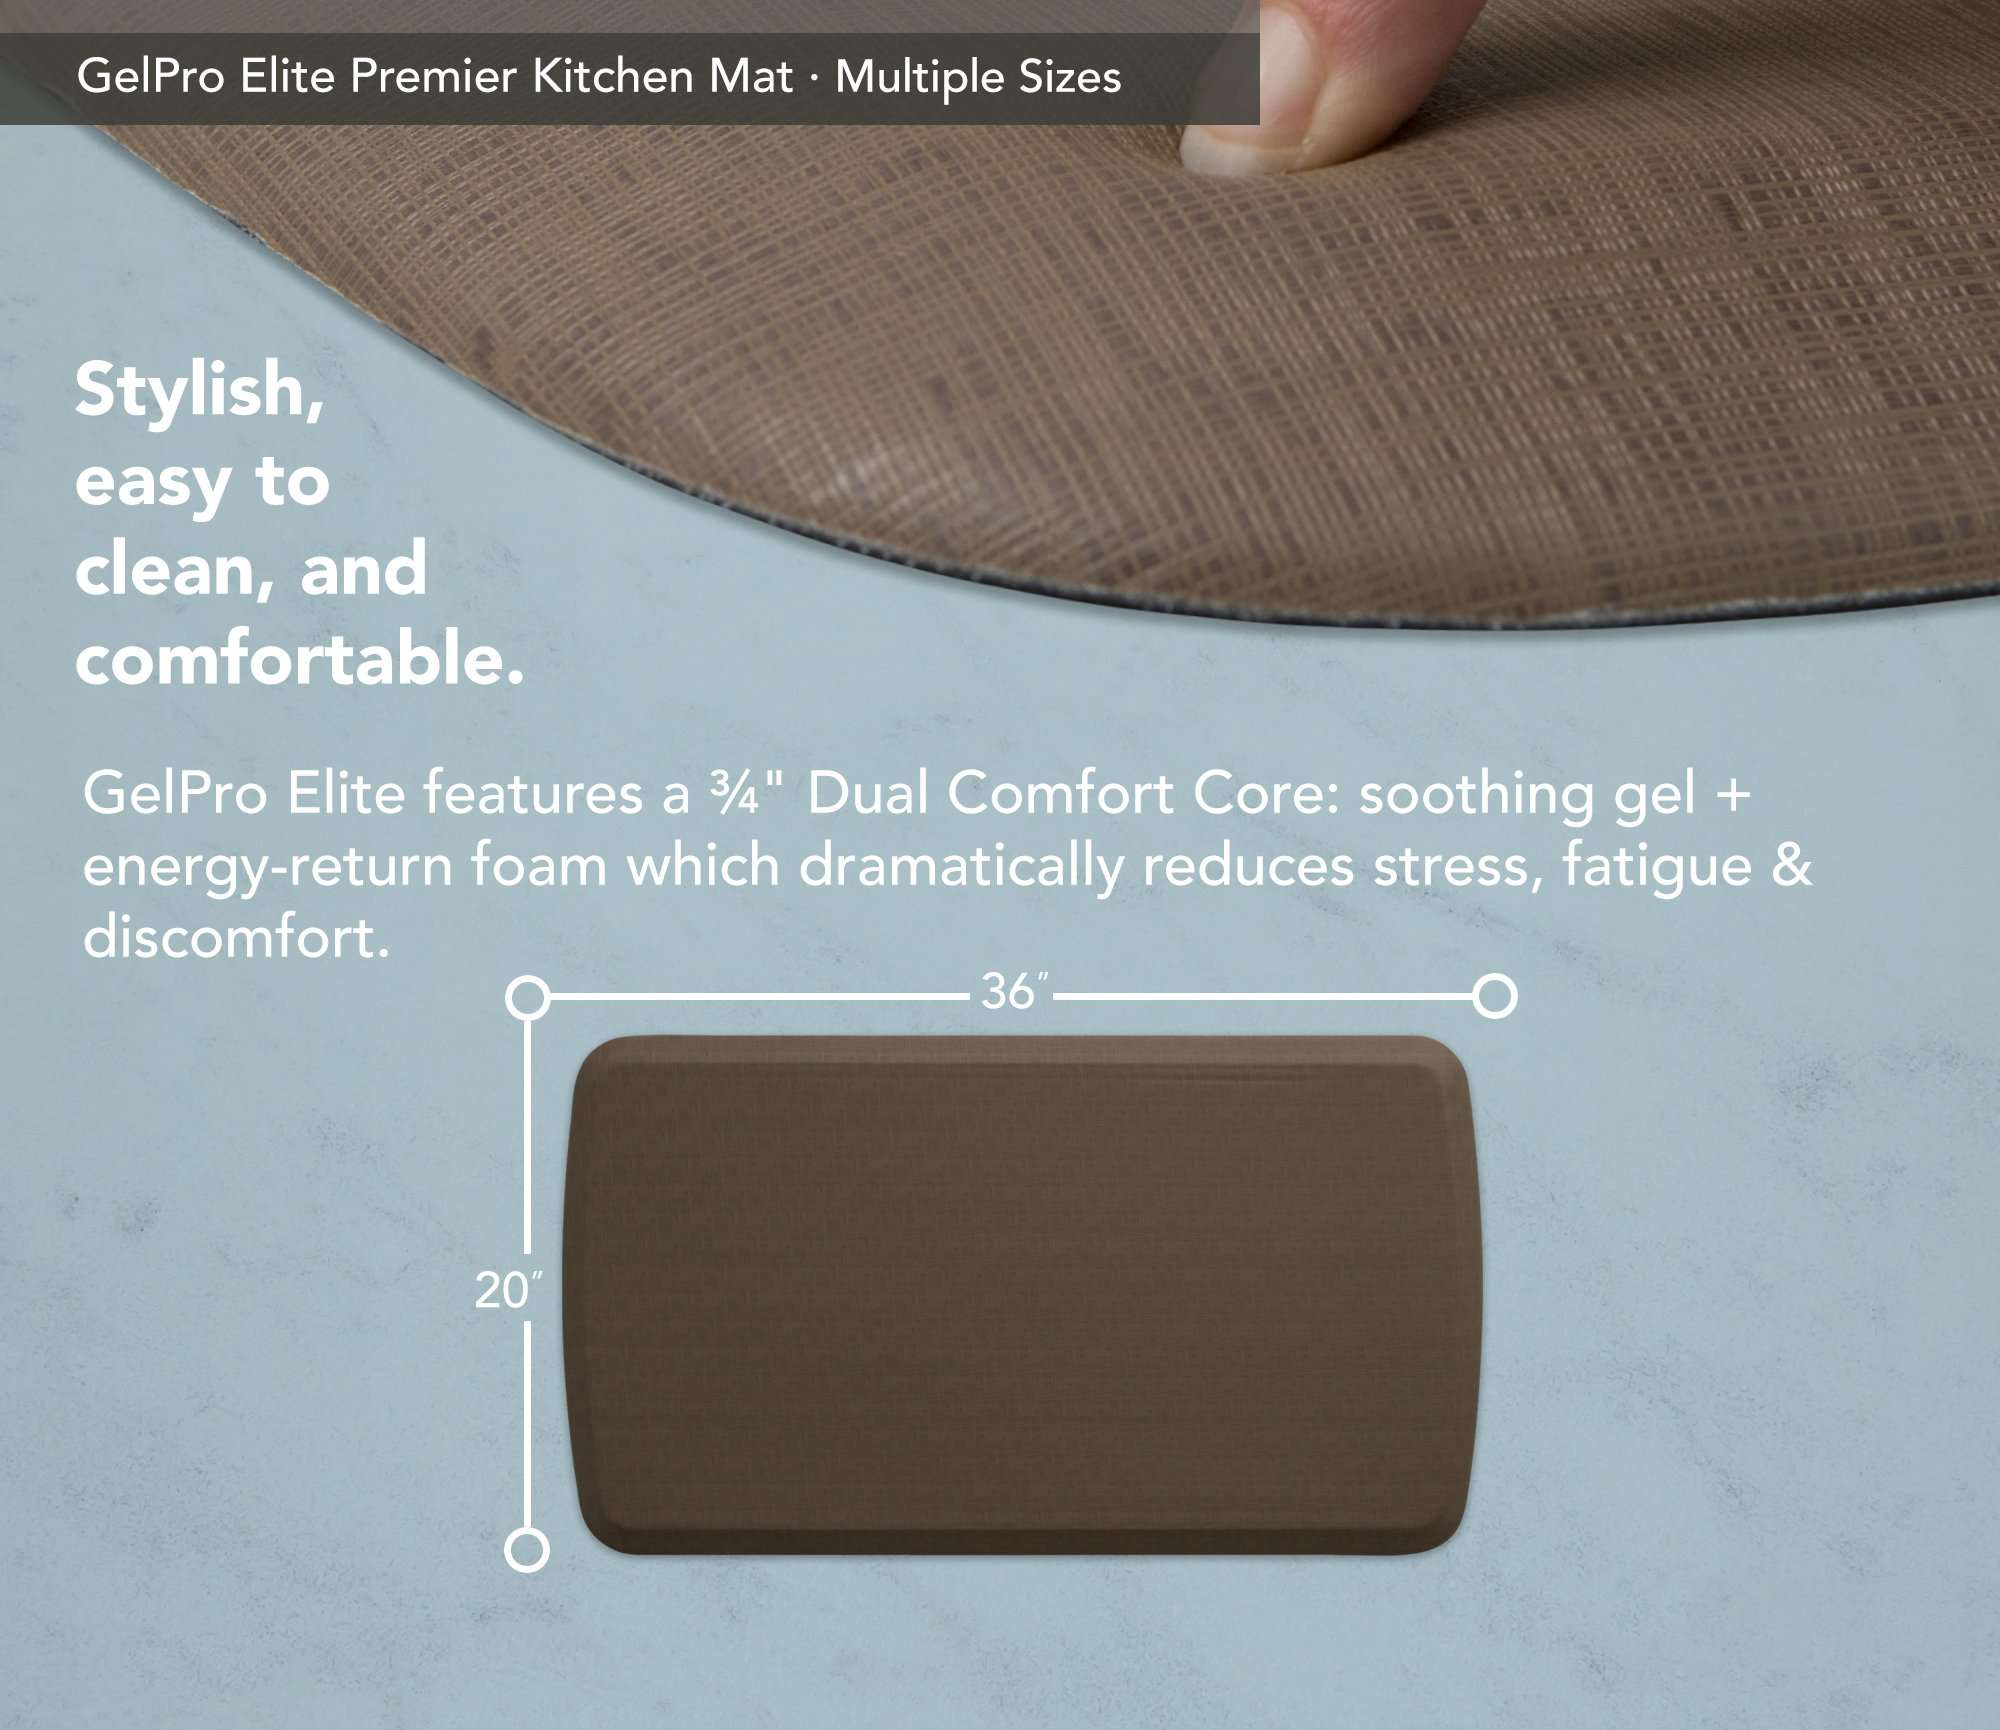 "GelPro Elite Premier Anti-Fatigue Kitchen Comfort Floor Mat, 20x36"", Linen Sandalwood Stain Resistant Surface with therapeutic gel and energy-return foam for health & wellness by GelPro (Image #3)"